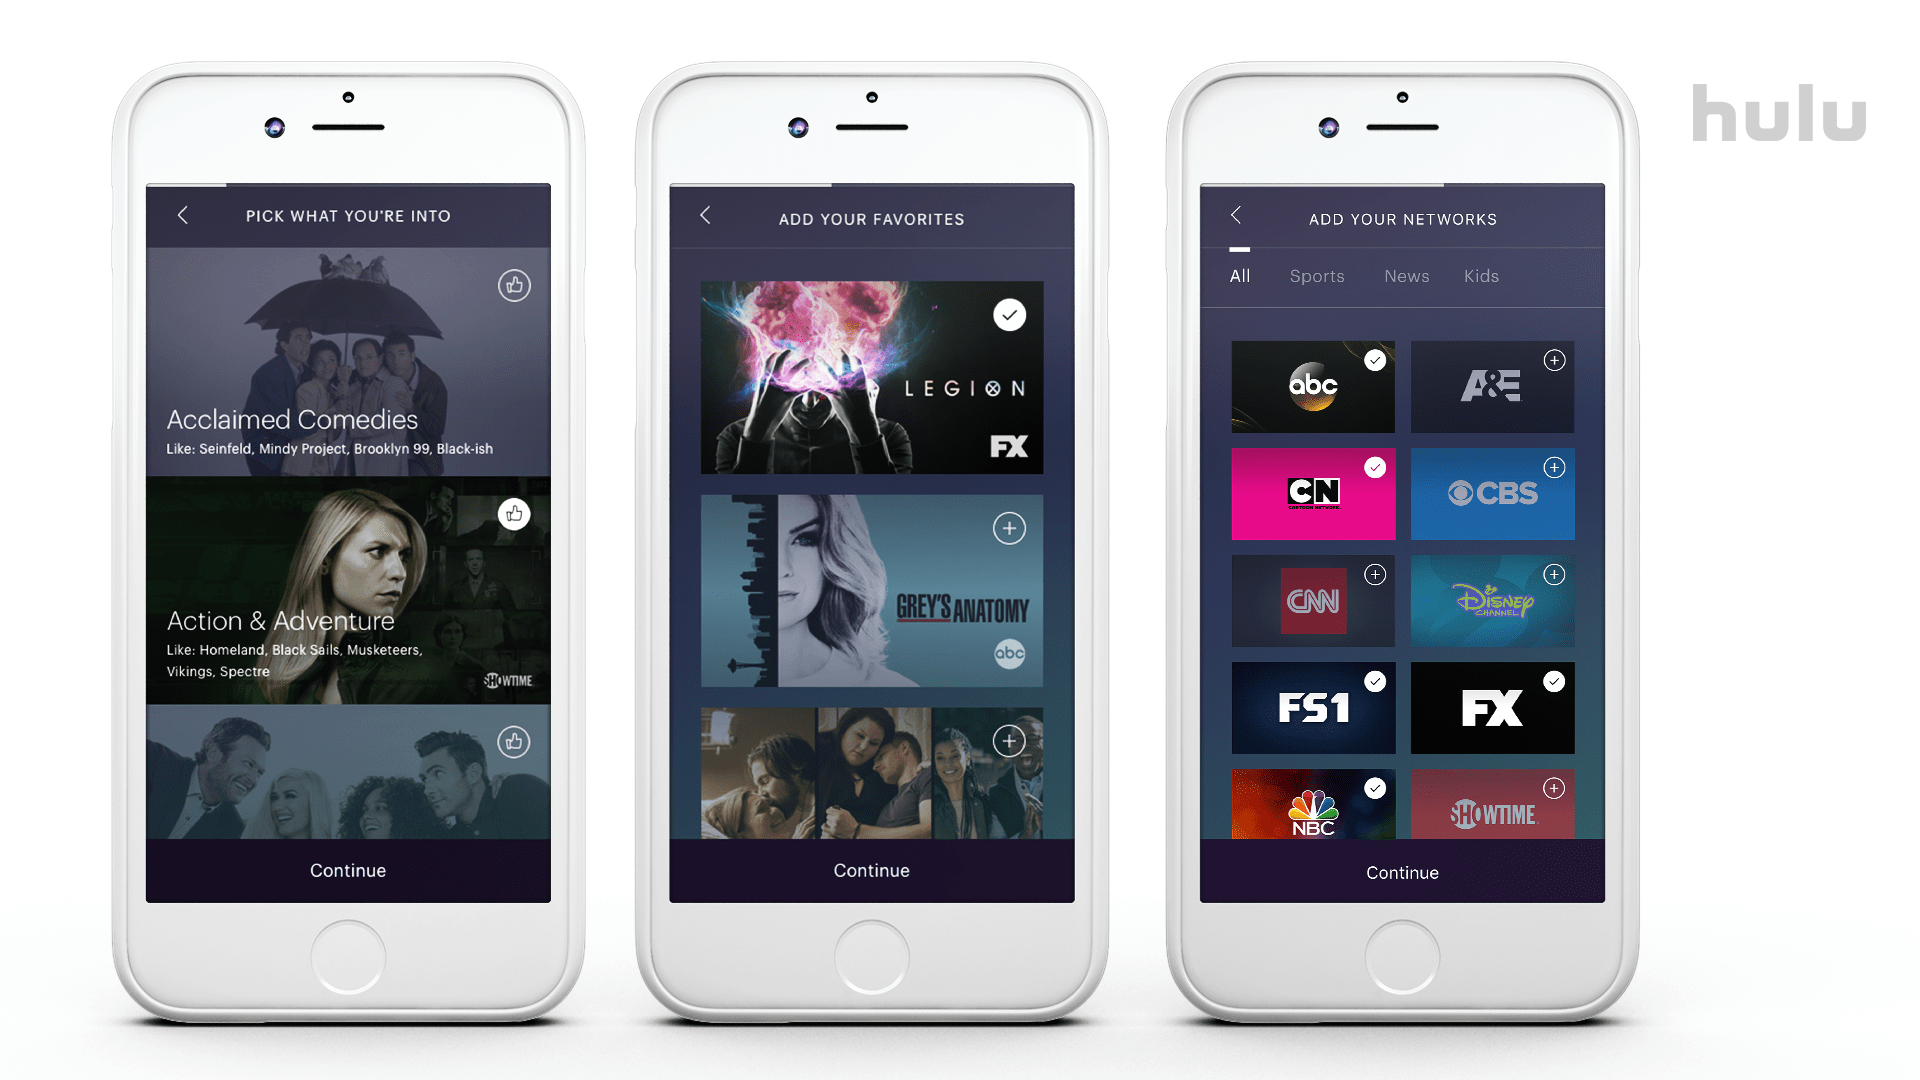 Hulu Hulus New Live Streaming Service Lets You Watch Dozens Of